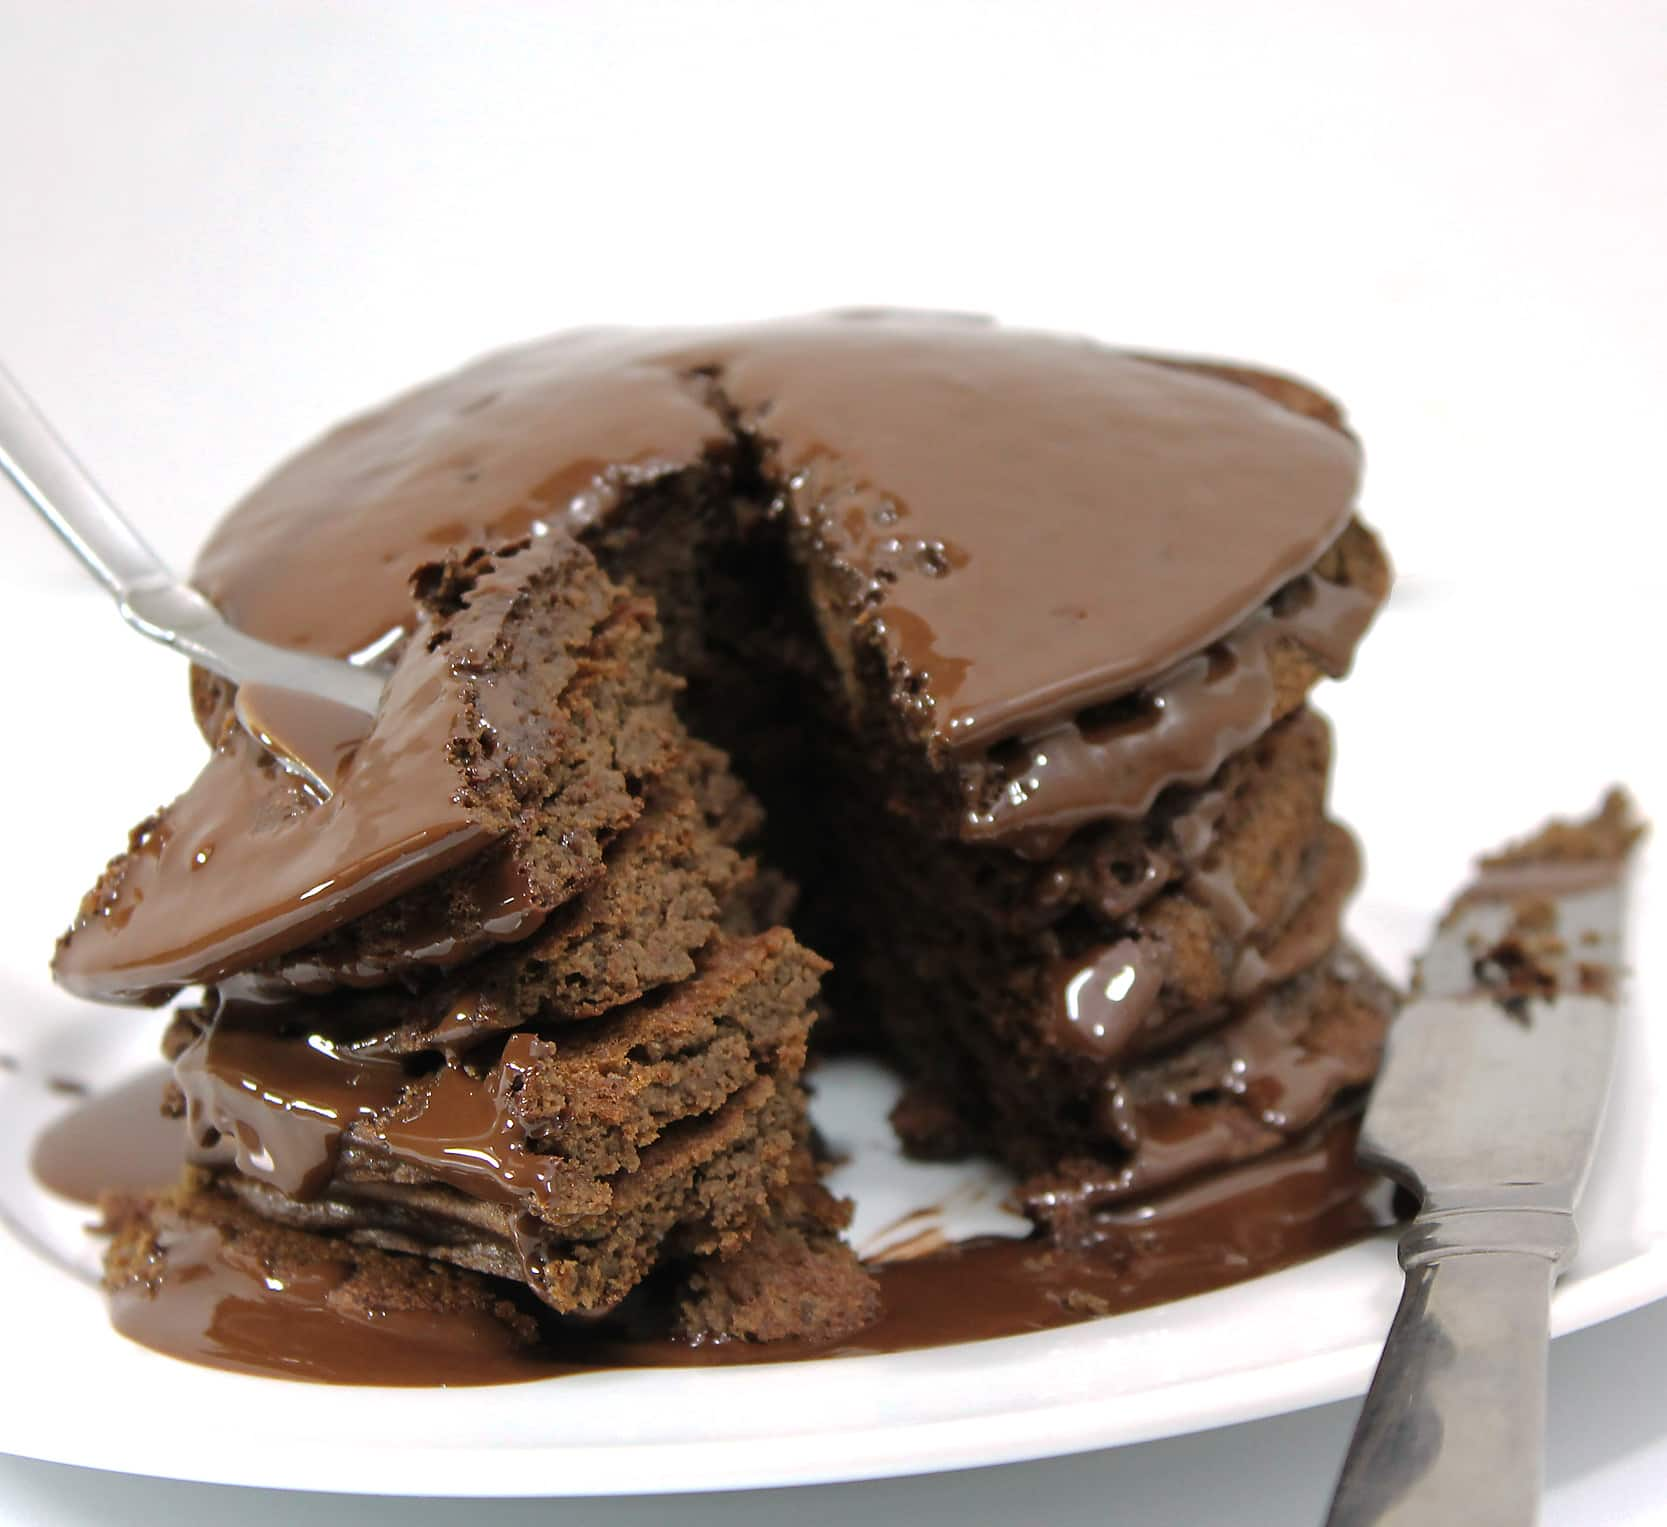 forkful of chocolate lentil pancakes